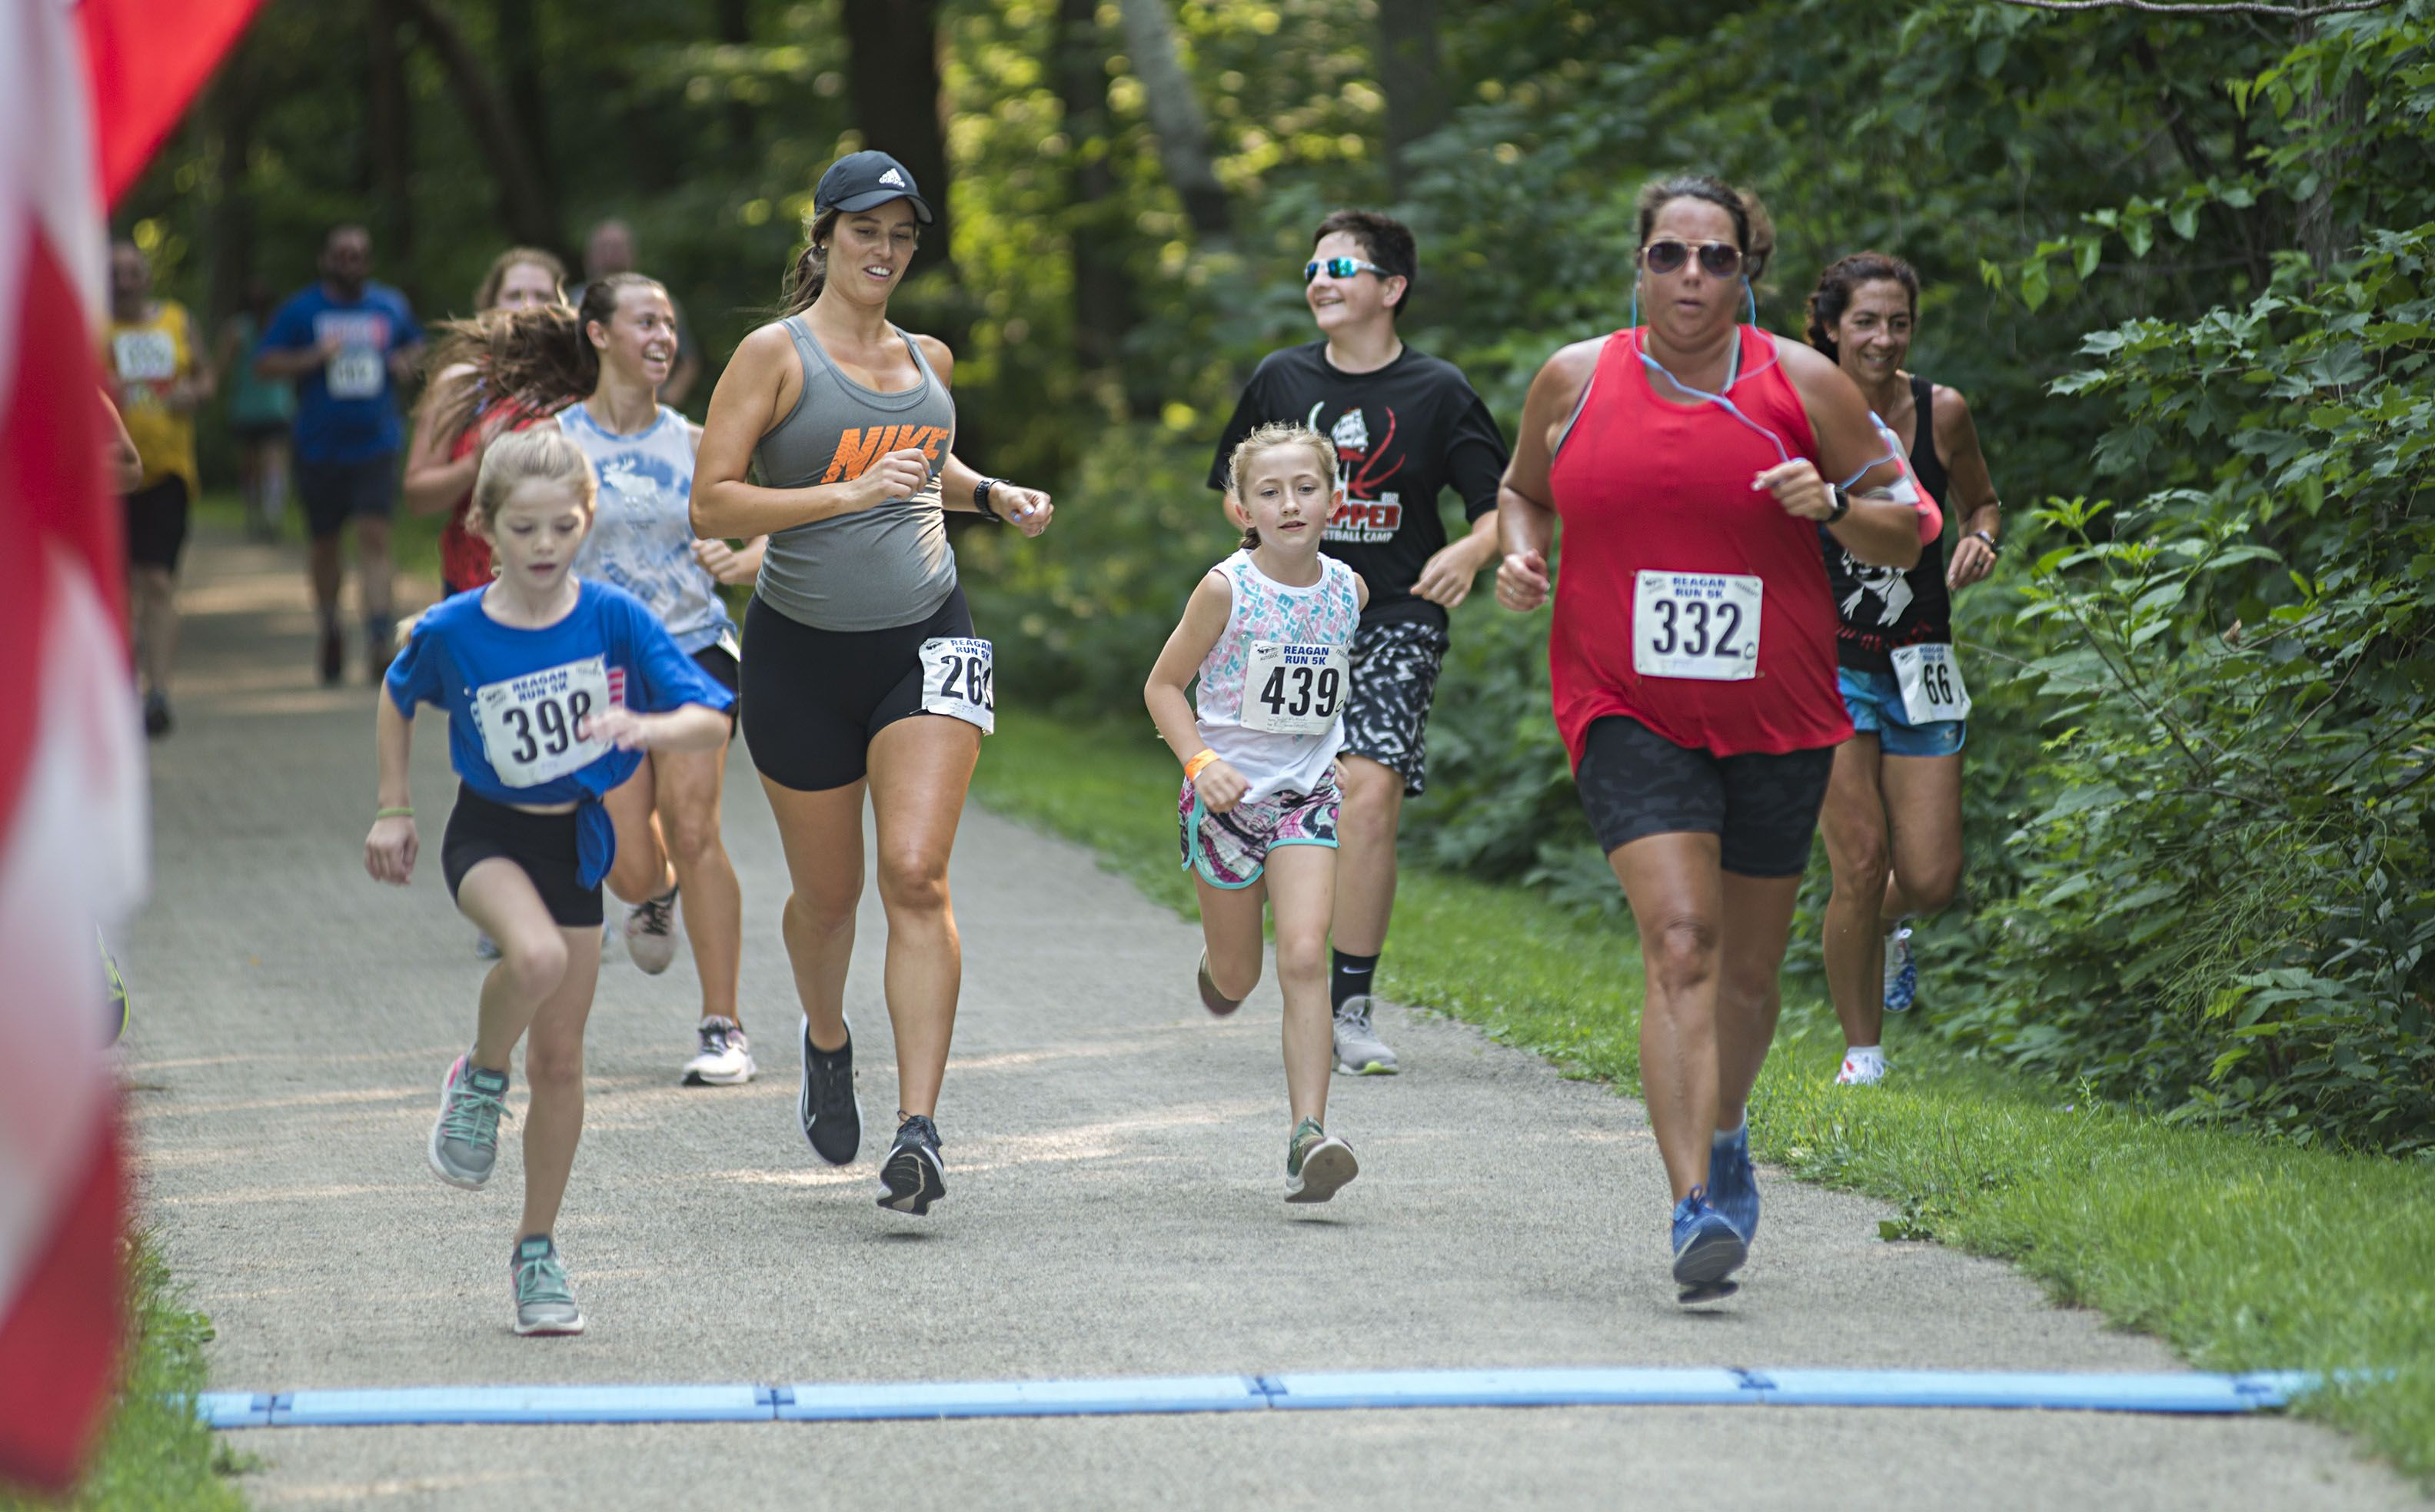 A group of runners come in to finish their race Saturday during the Reagan Run. This year's course started at Lowell Park and finished at the Washington Avenue bike path. Organizers hope to have the original course back up and running next year.